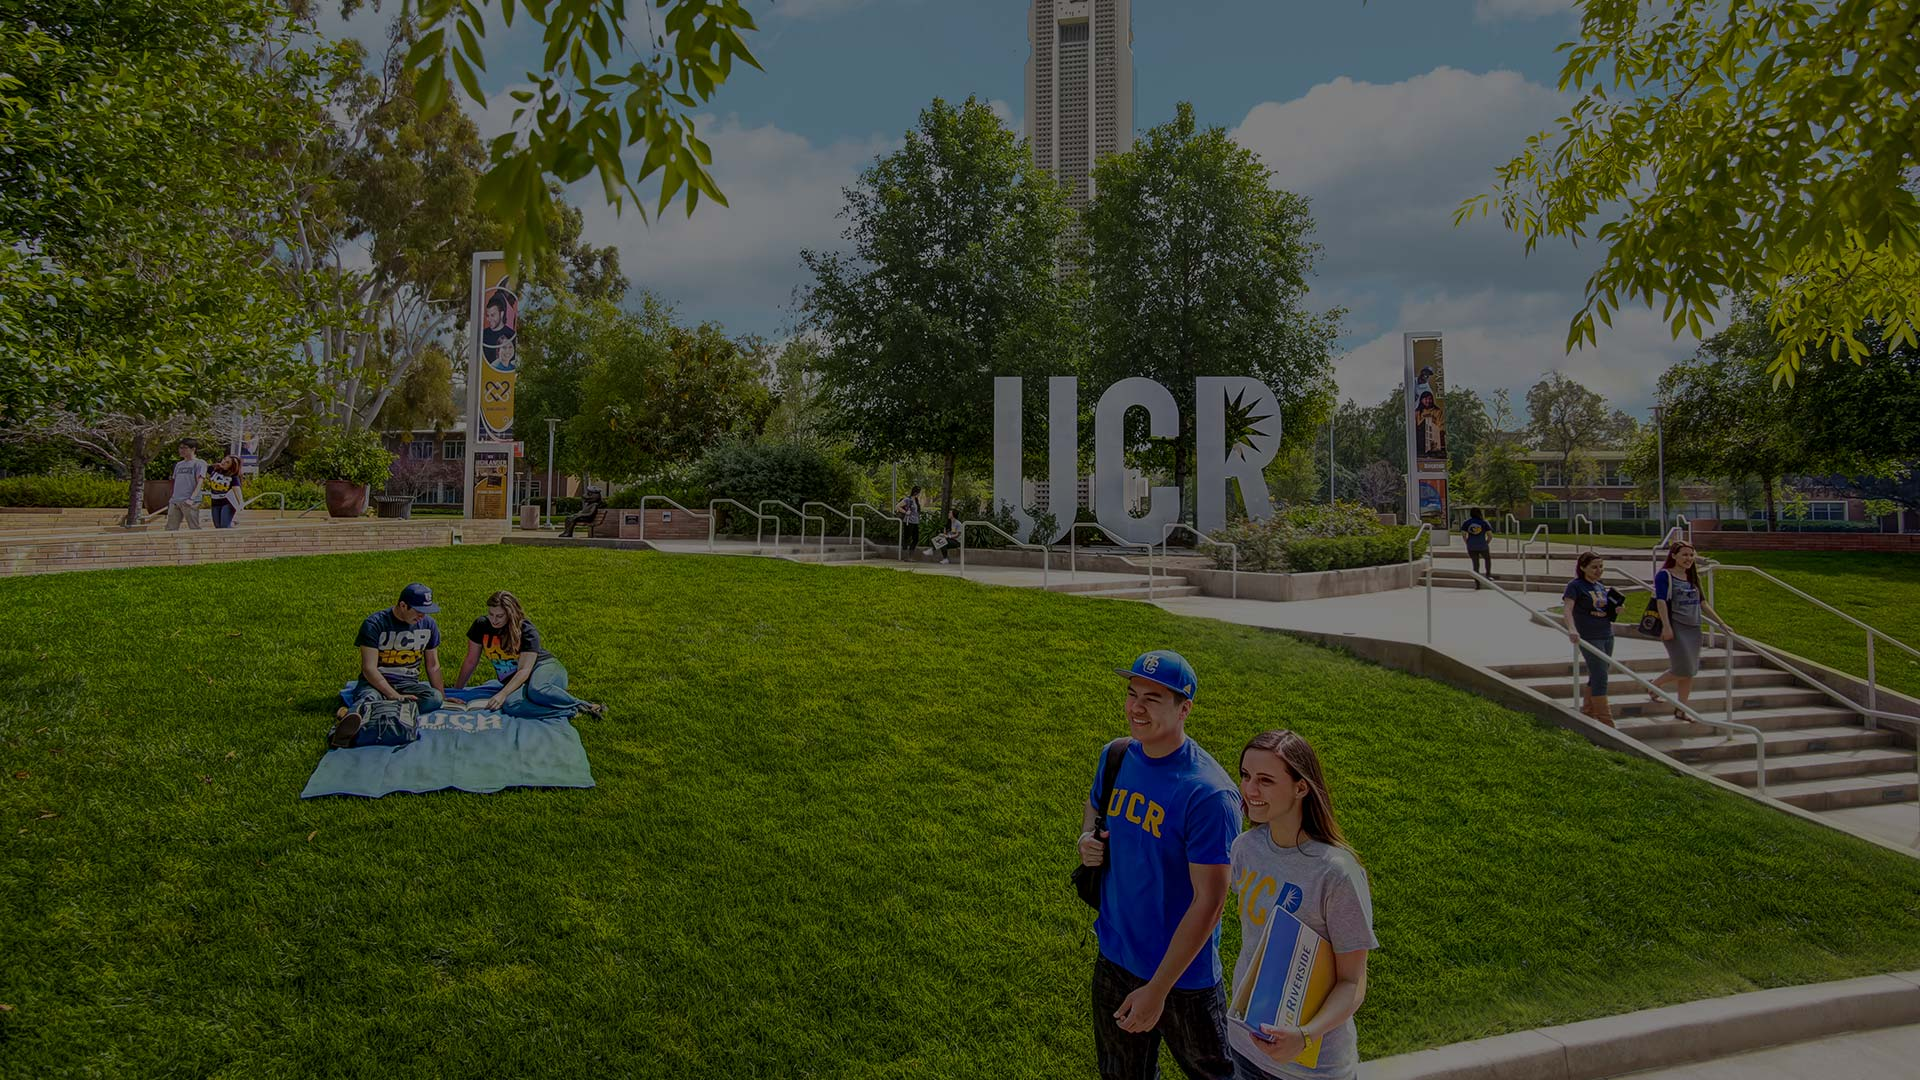 UCR-Sign-College-Virtual-Tour-Provider-Viritual-Tours-For-College-College-Virtual-Tour-Company-Hero